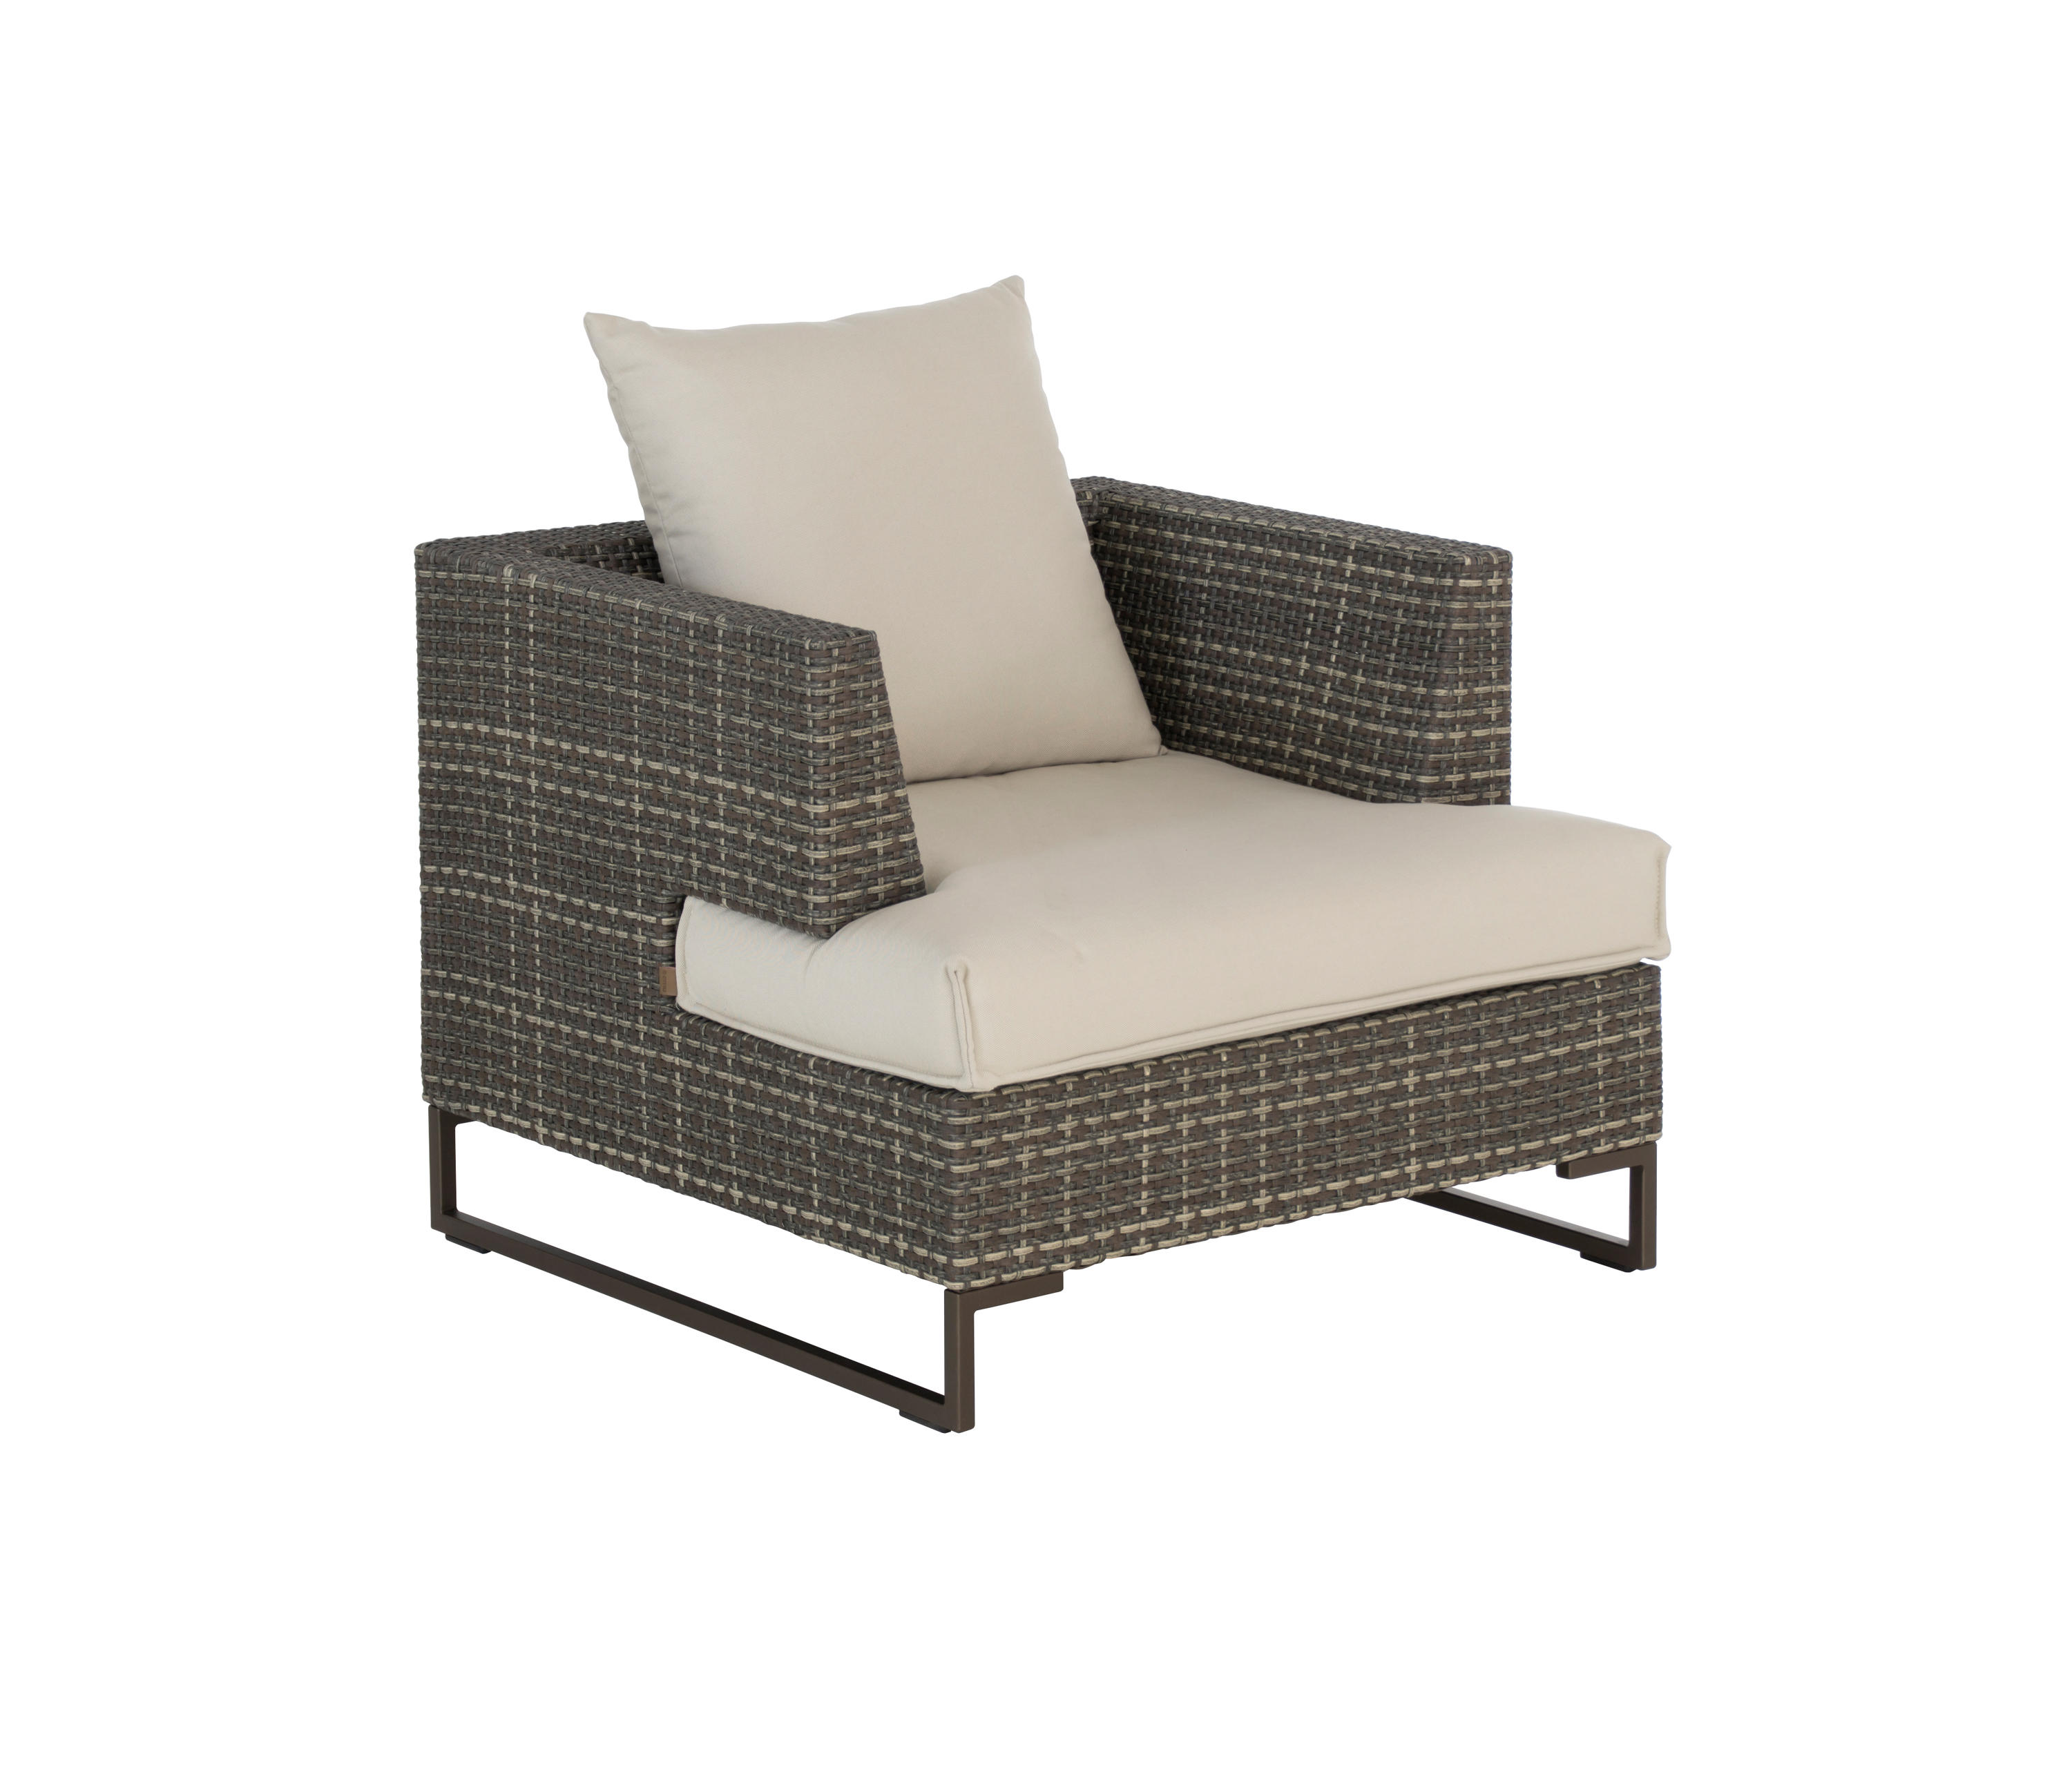 Luxor | 6540 By EMU Group | Garden Armchairs